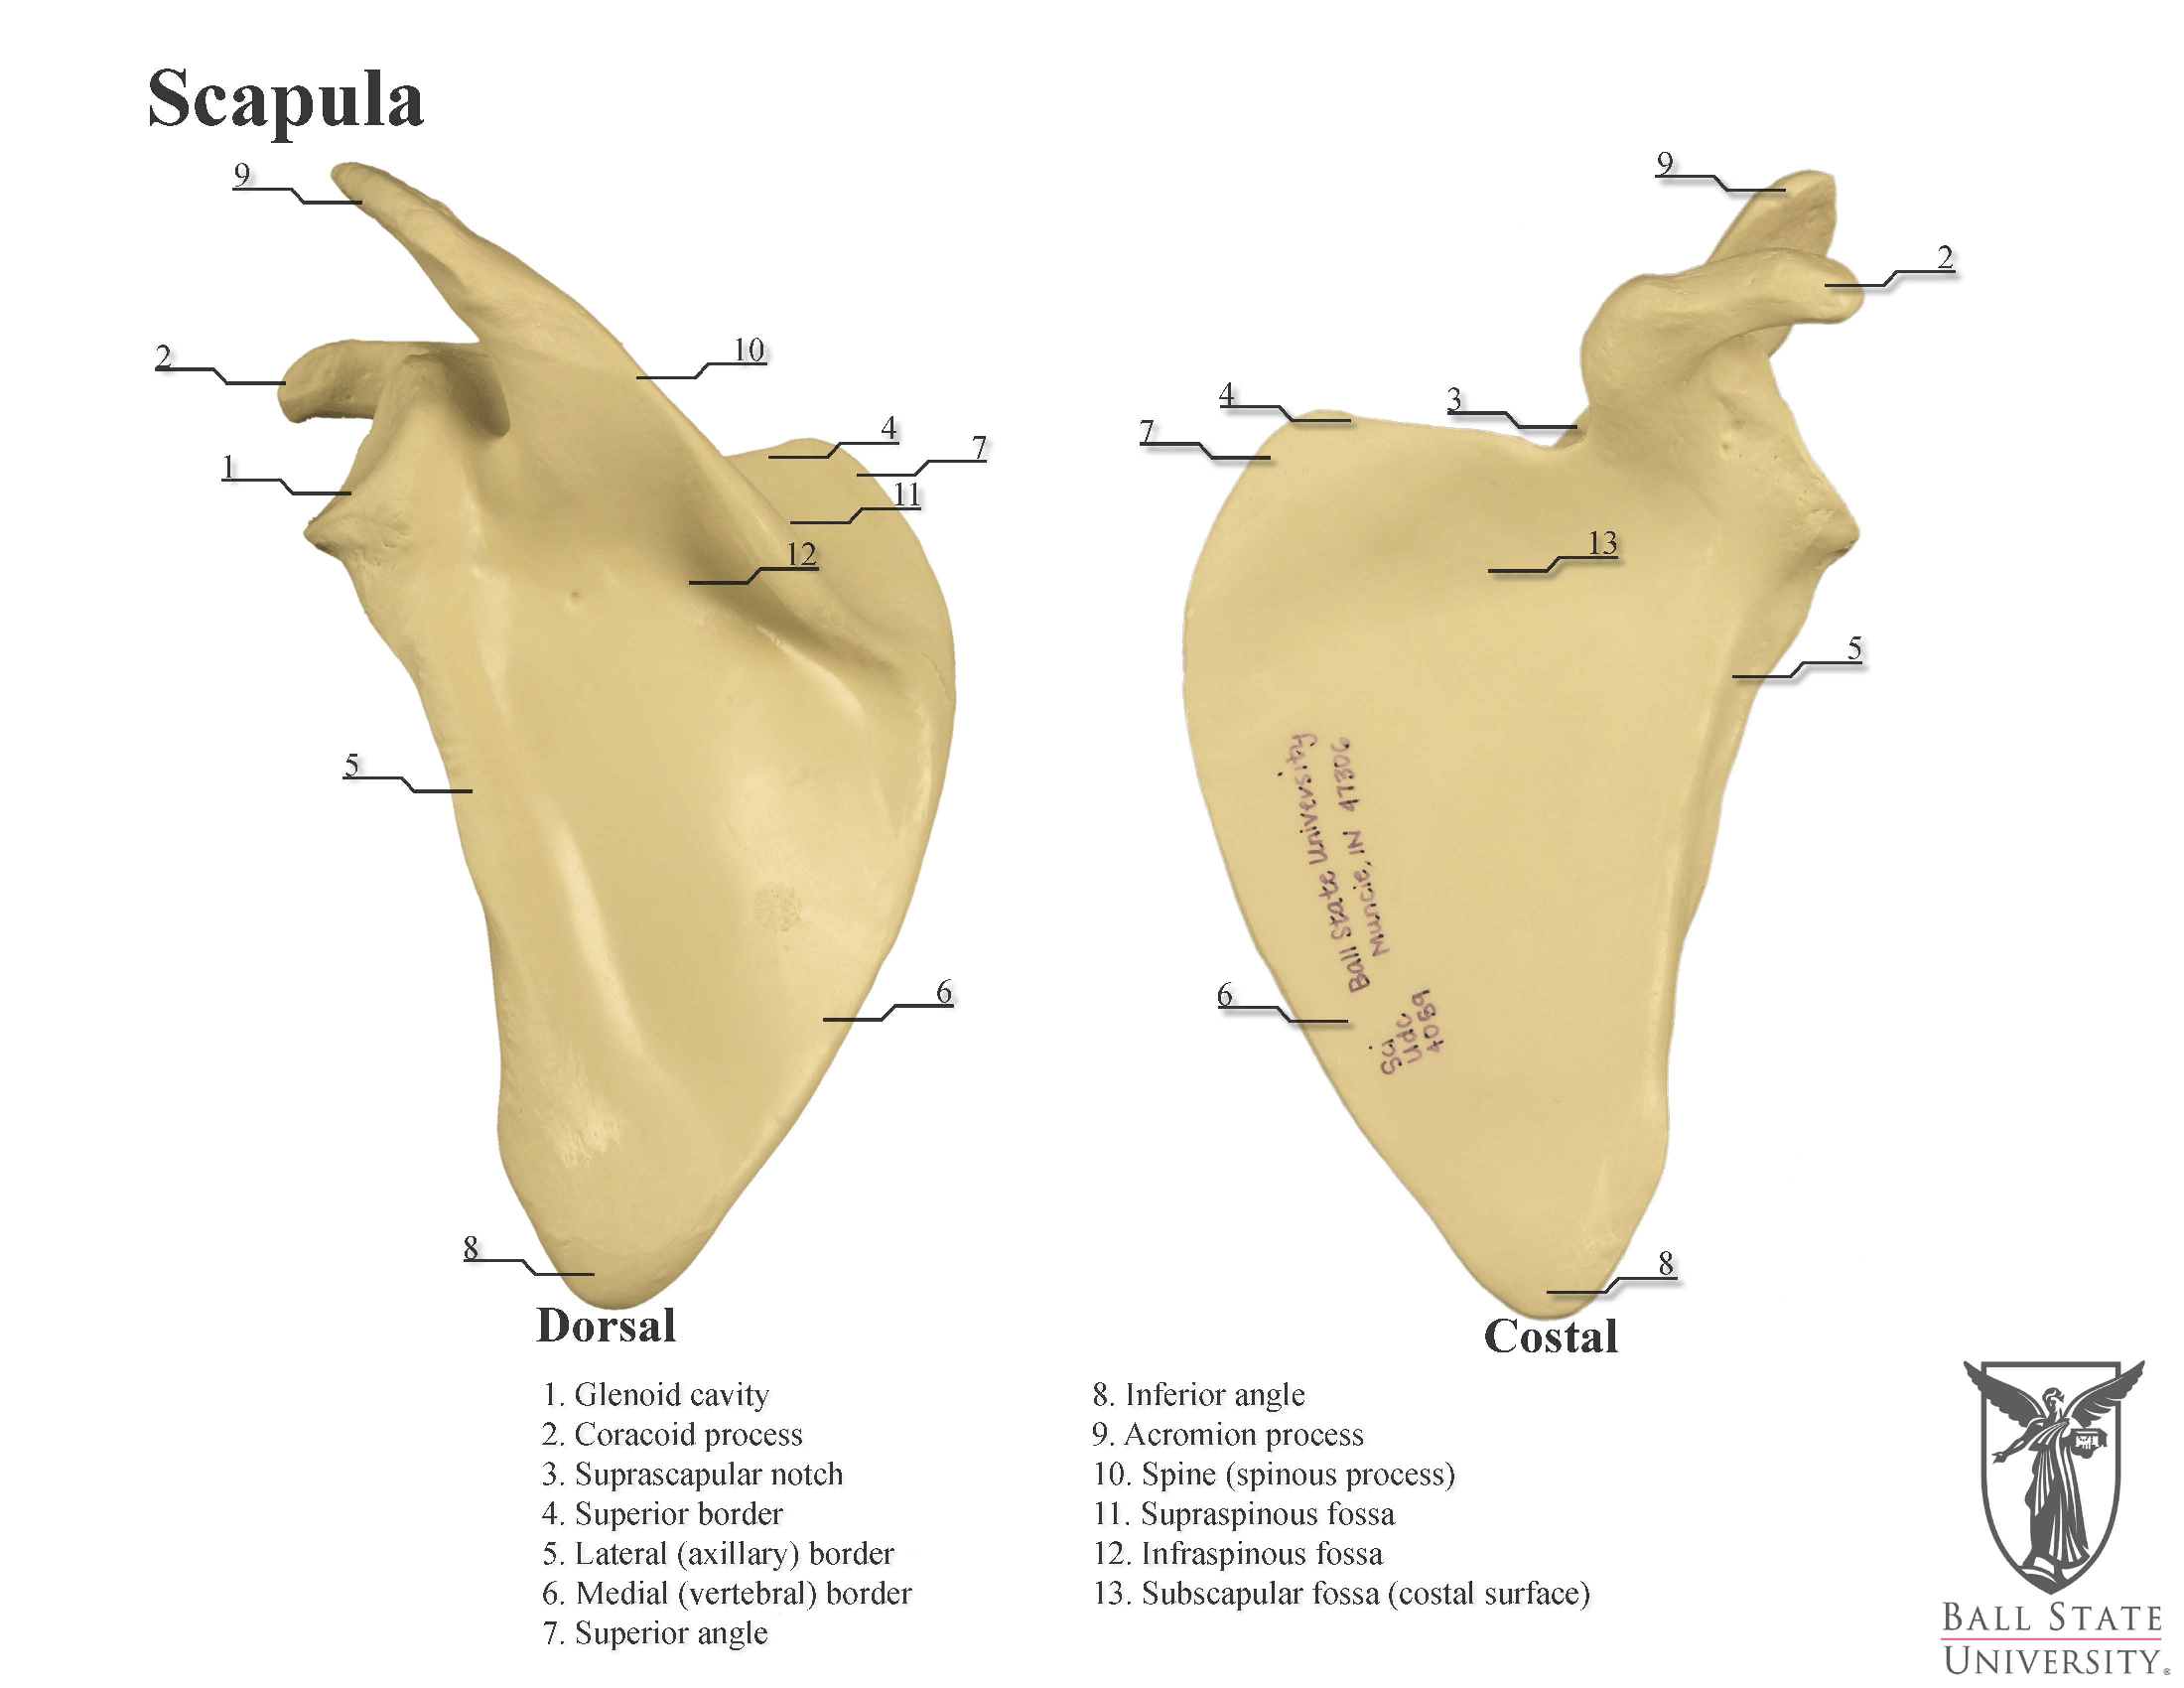 35 Blank Scapula To Label